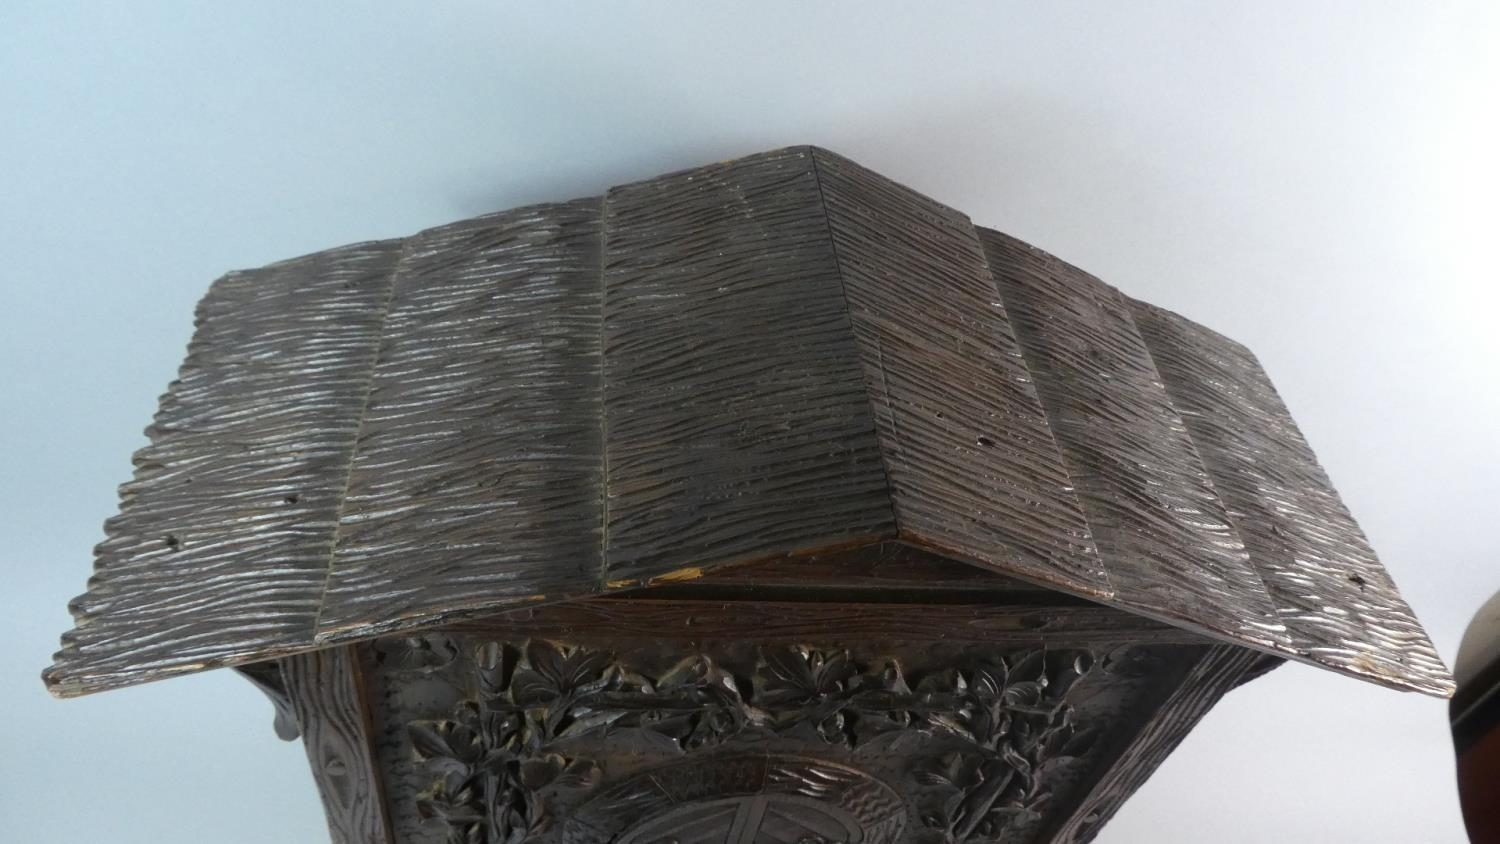 Lot 18 - A 19th Century Black Forest Carved Linden Wood Table Cabinet. 40cm x 19cm x 59cm High